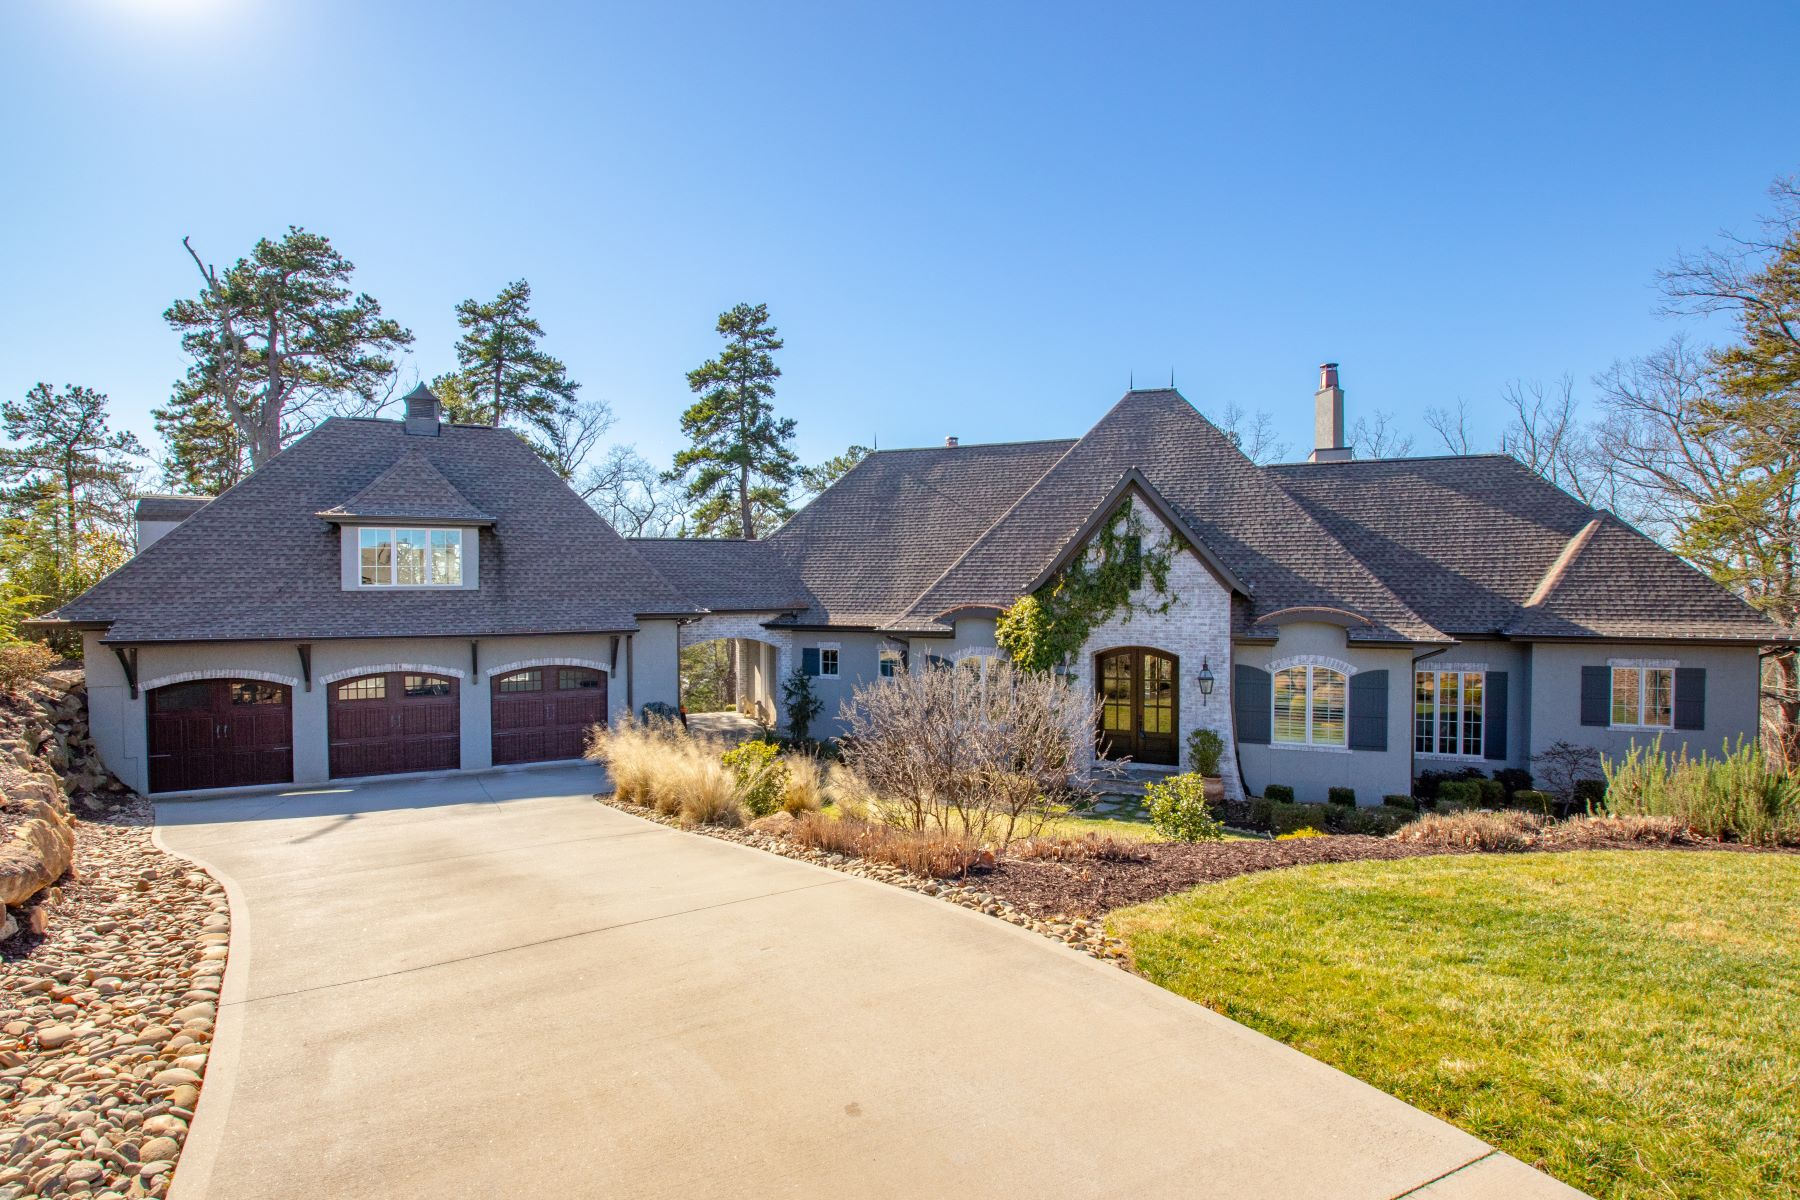 Single Family Homes for Sale at Beautiful, custom home with pool, privacy and views in Montebello! 14 Bella Citta Court Greenville, South Carolina 29609 United States